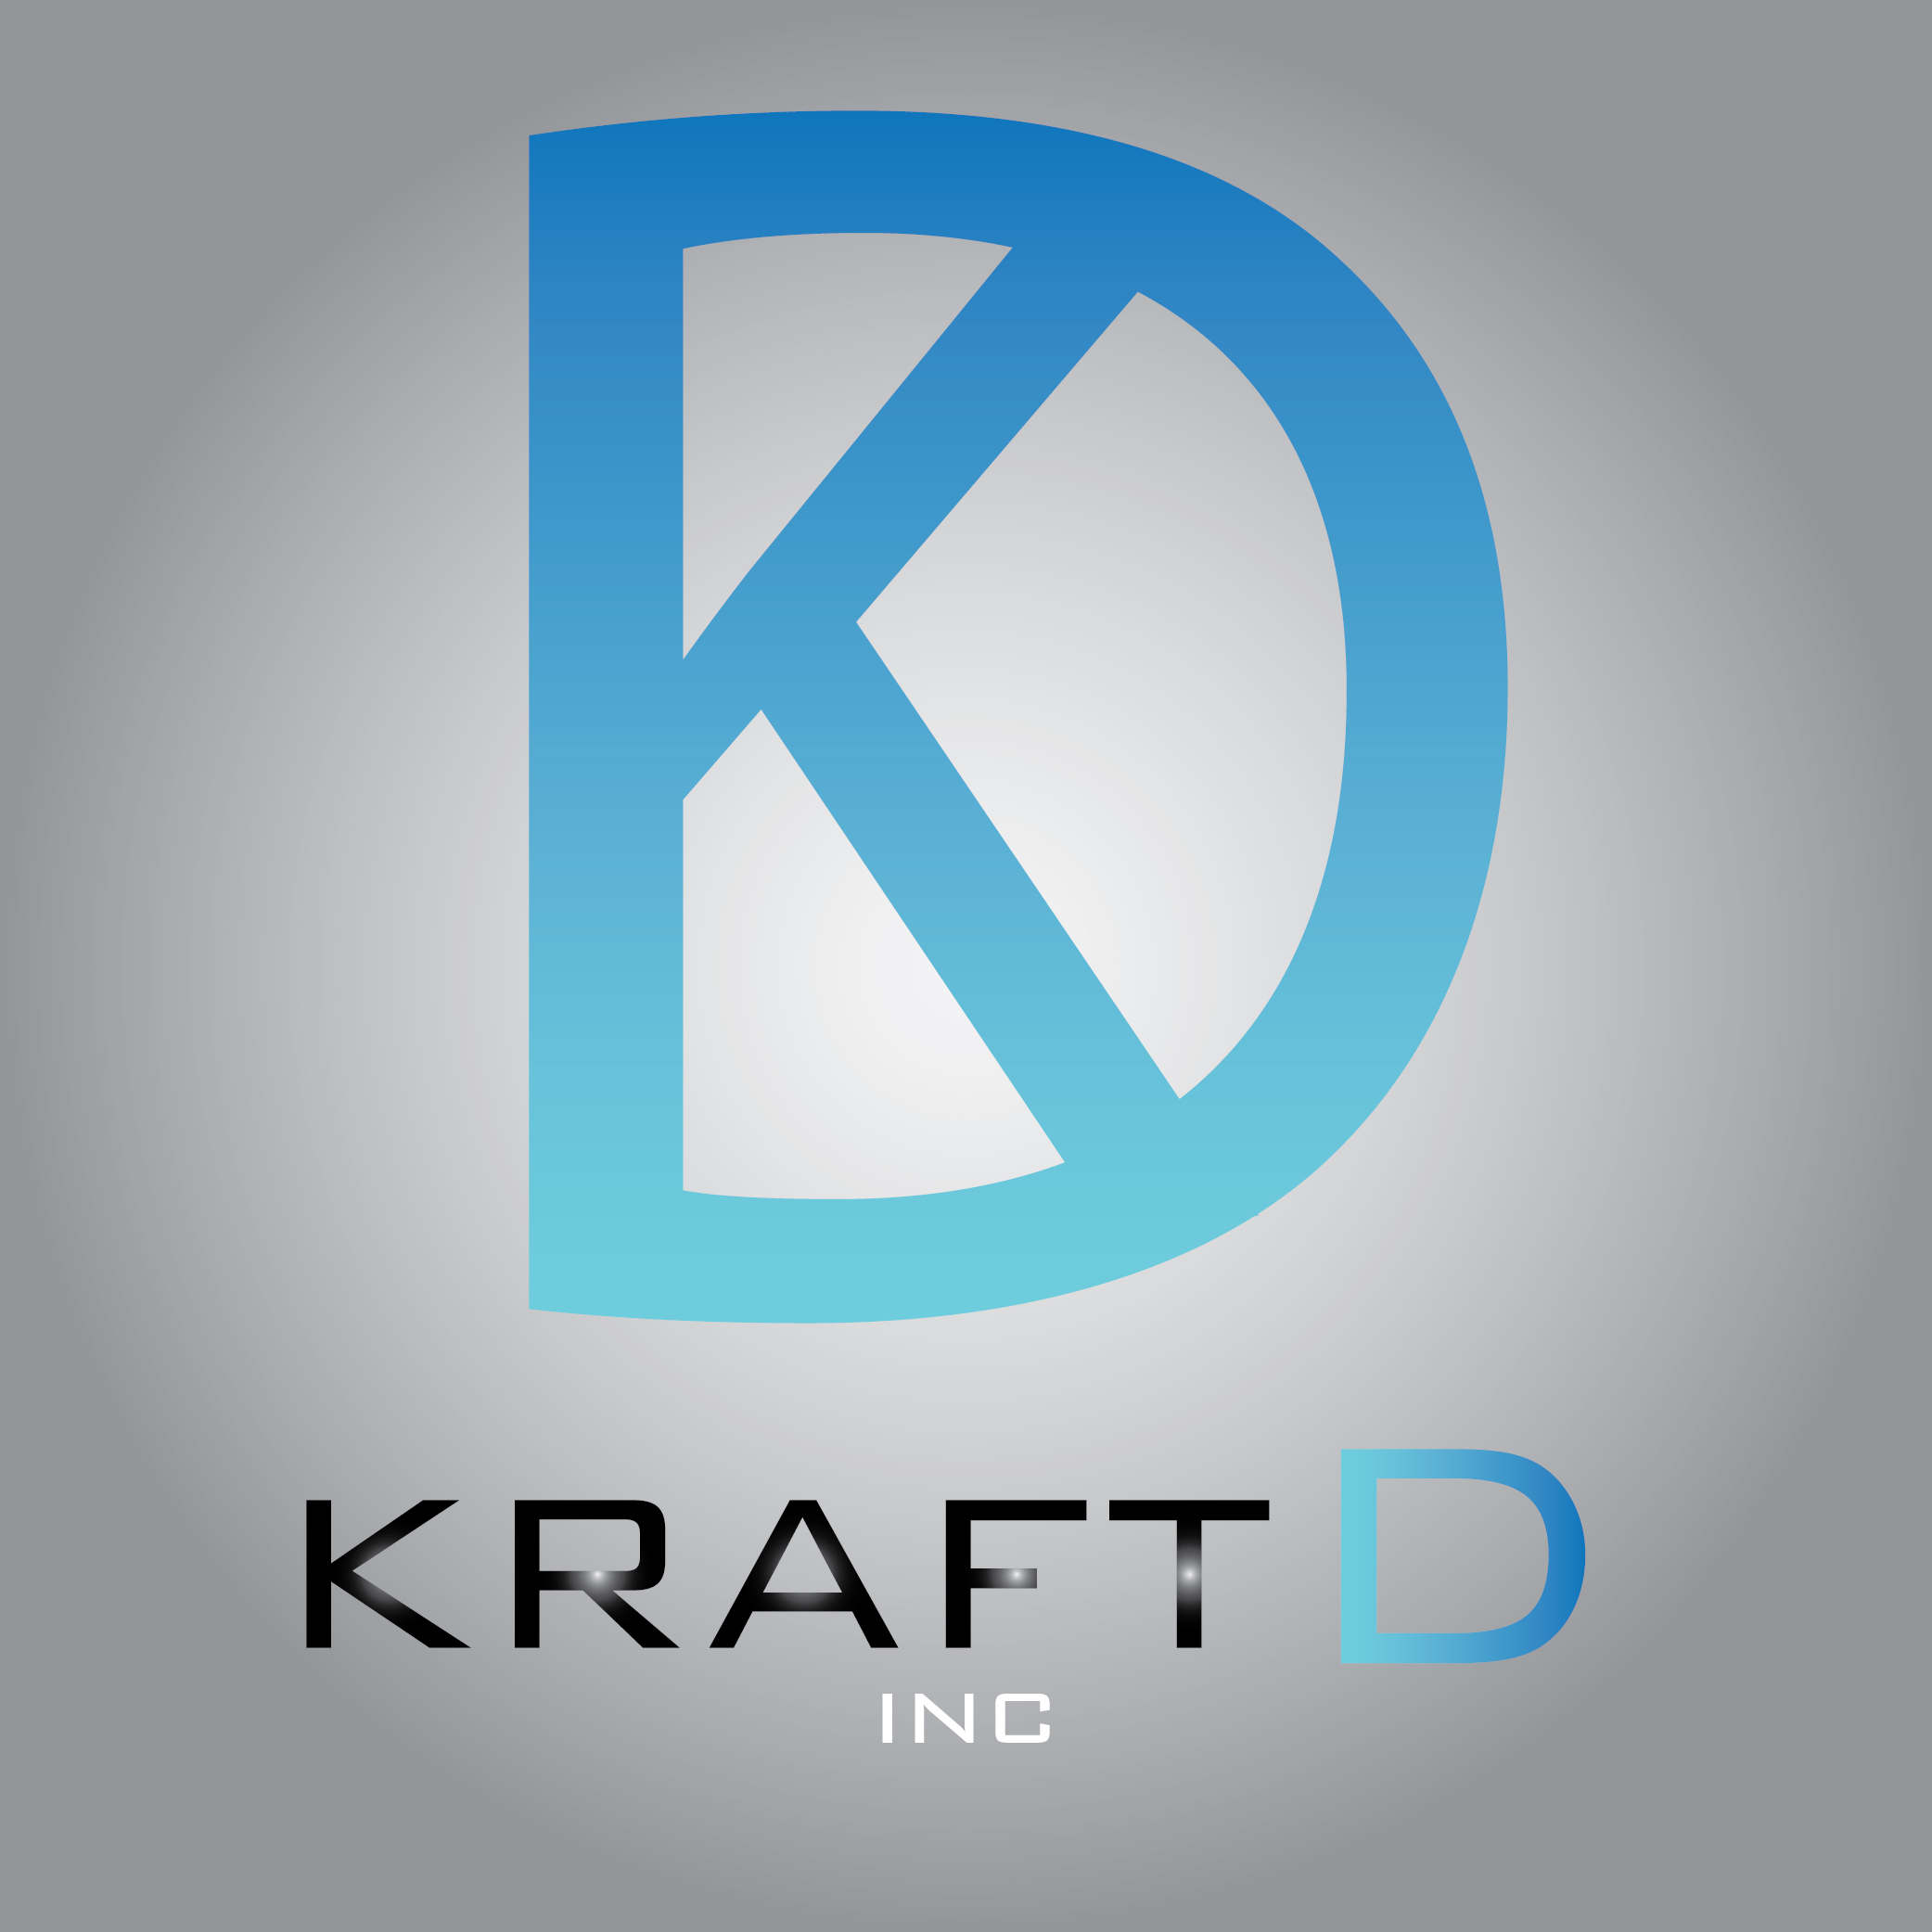 Logo Design by Christian Janell Tapic - Entry No. 321 in the Logo Design Contest Unique Logo Design Wanted for Kraft D Inc.